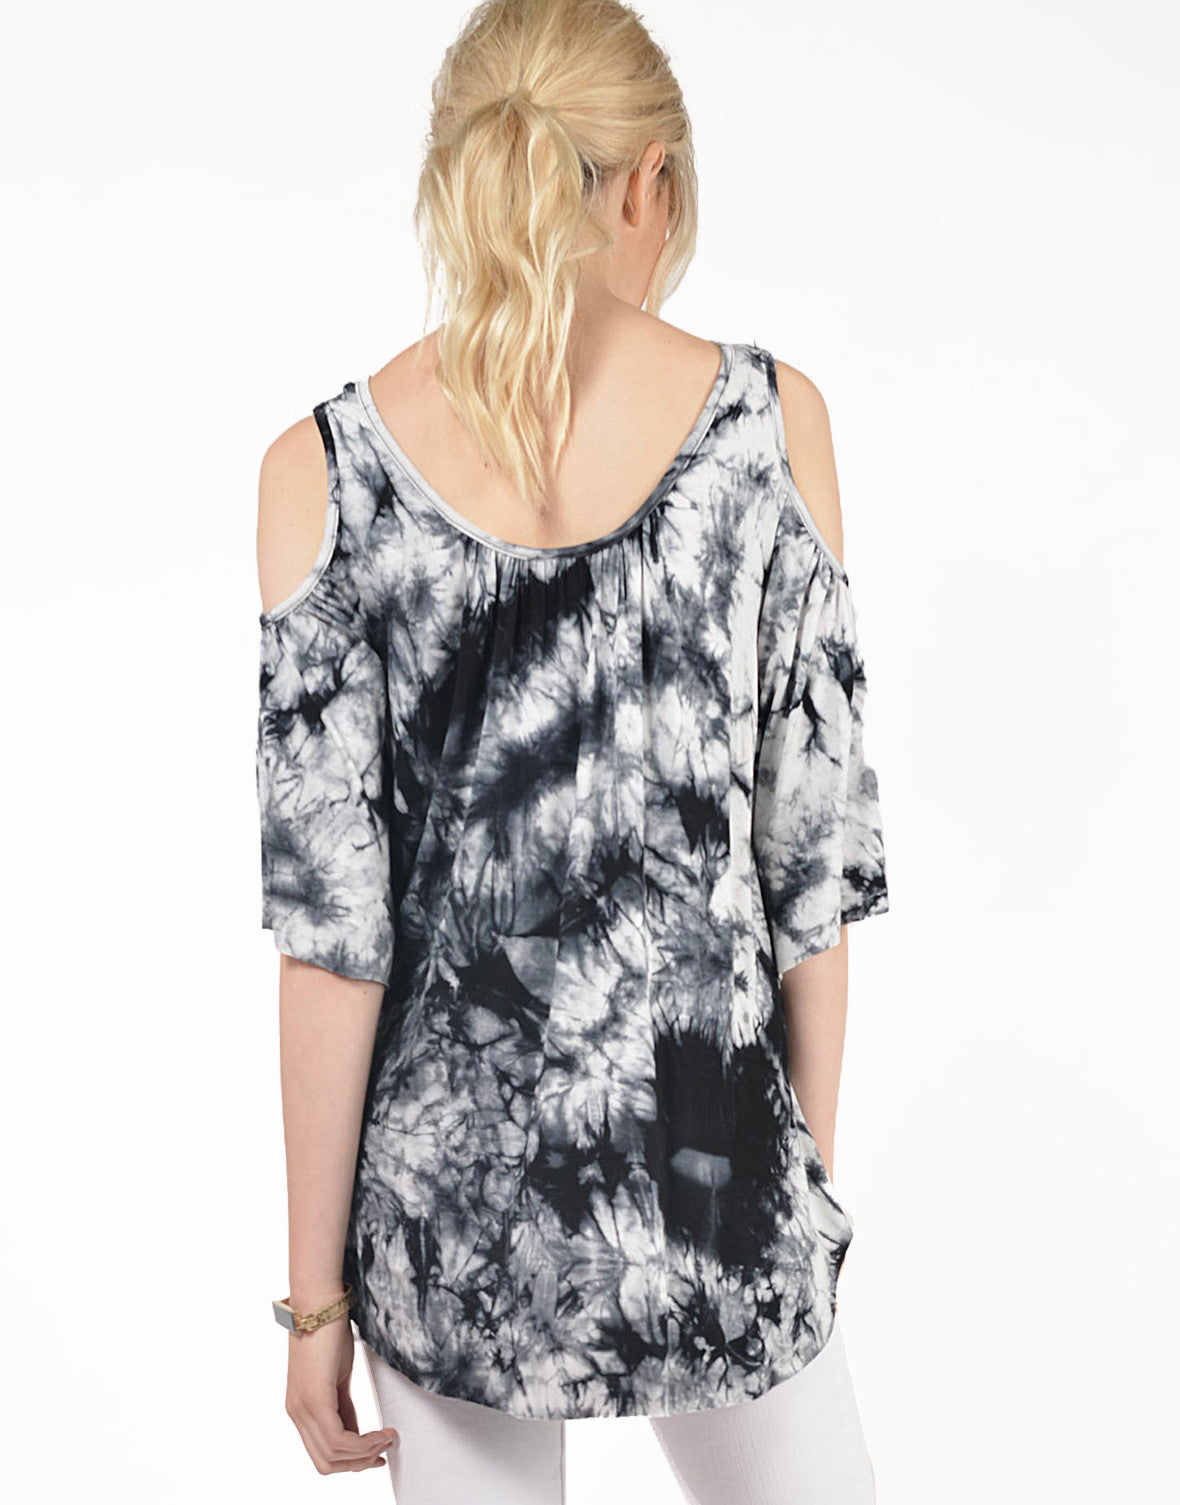 Back View of Tie-Dye Cold Shoulder Top